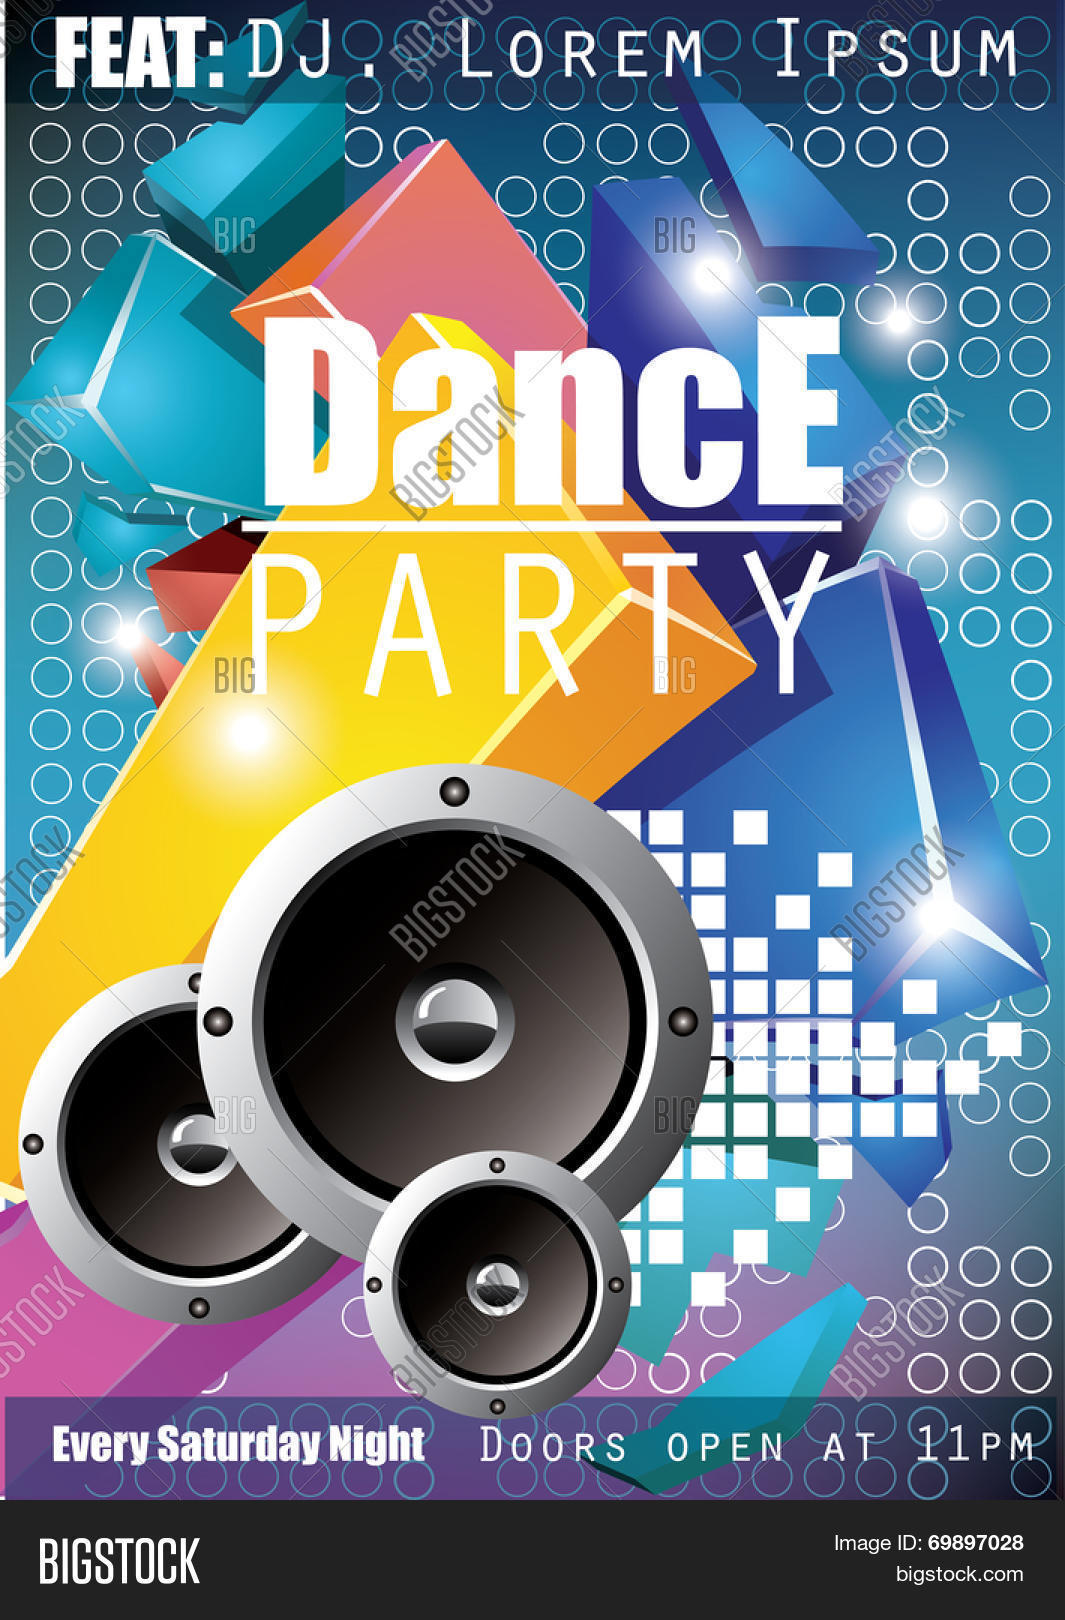 Dance Party Poster Vector & Photo (Free Trial) | Bigstock